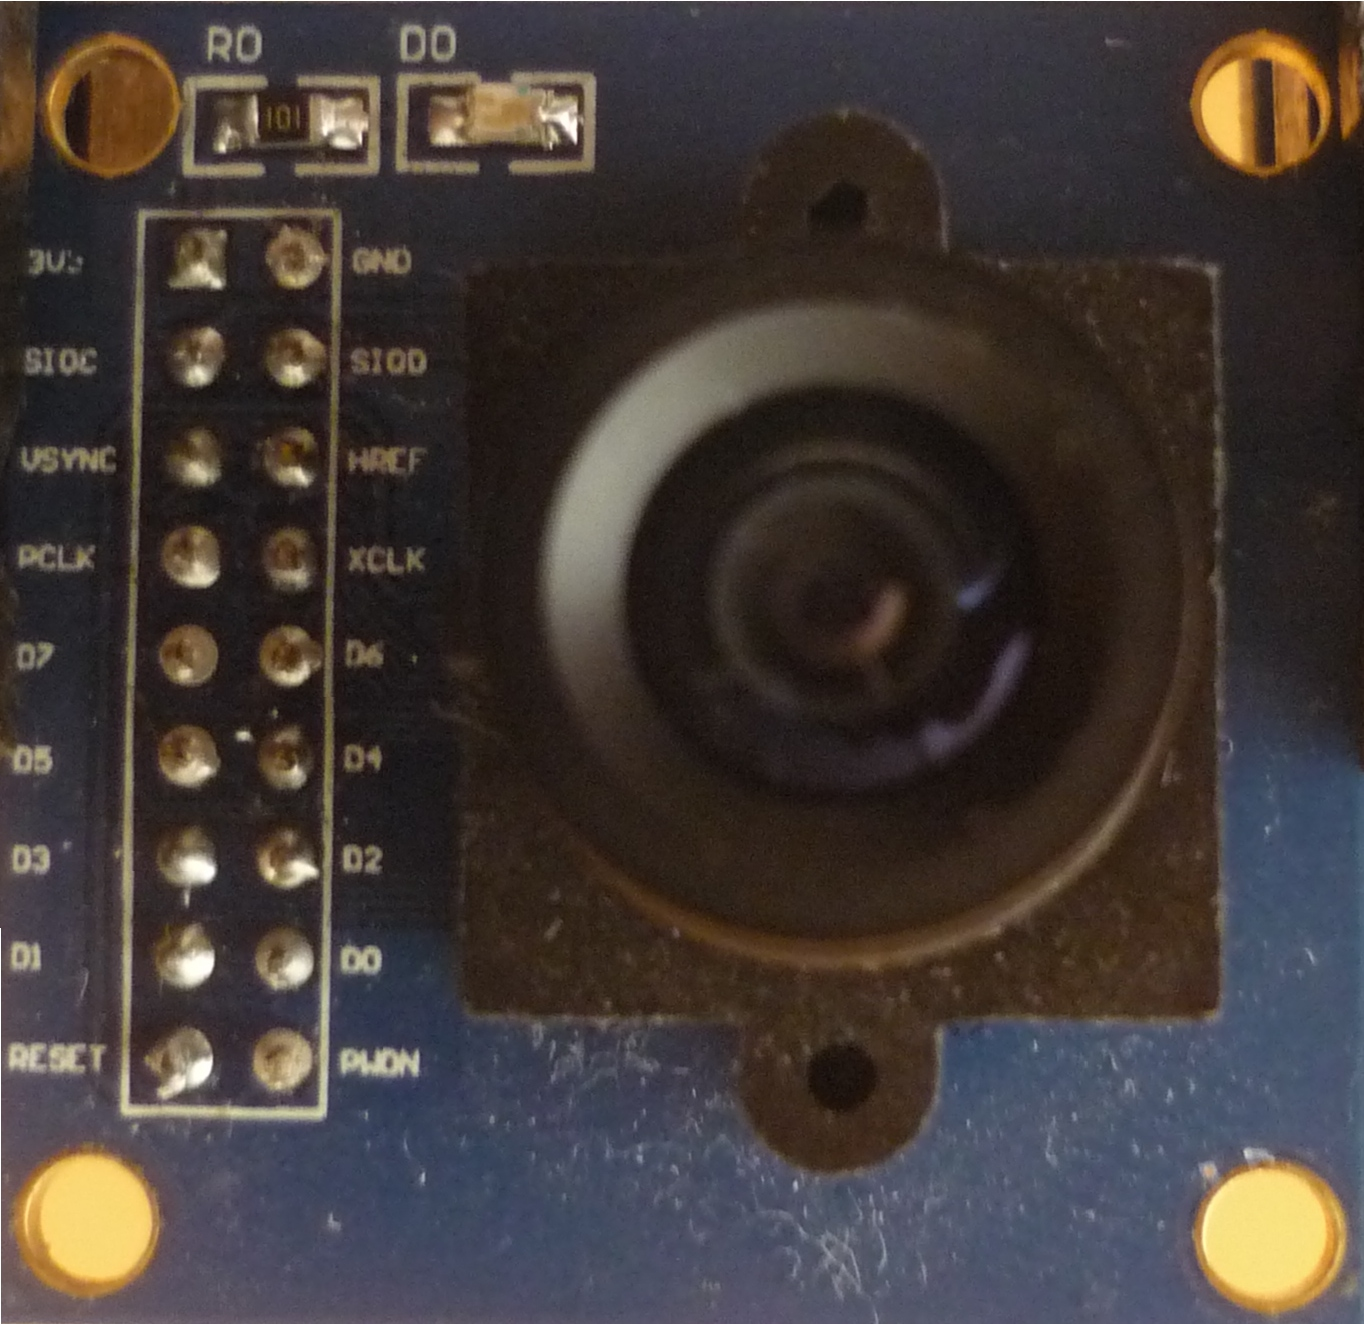 Embedded Programmer  Hacking the OV7670 camera module